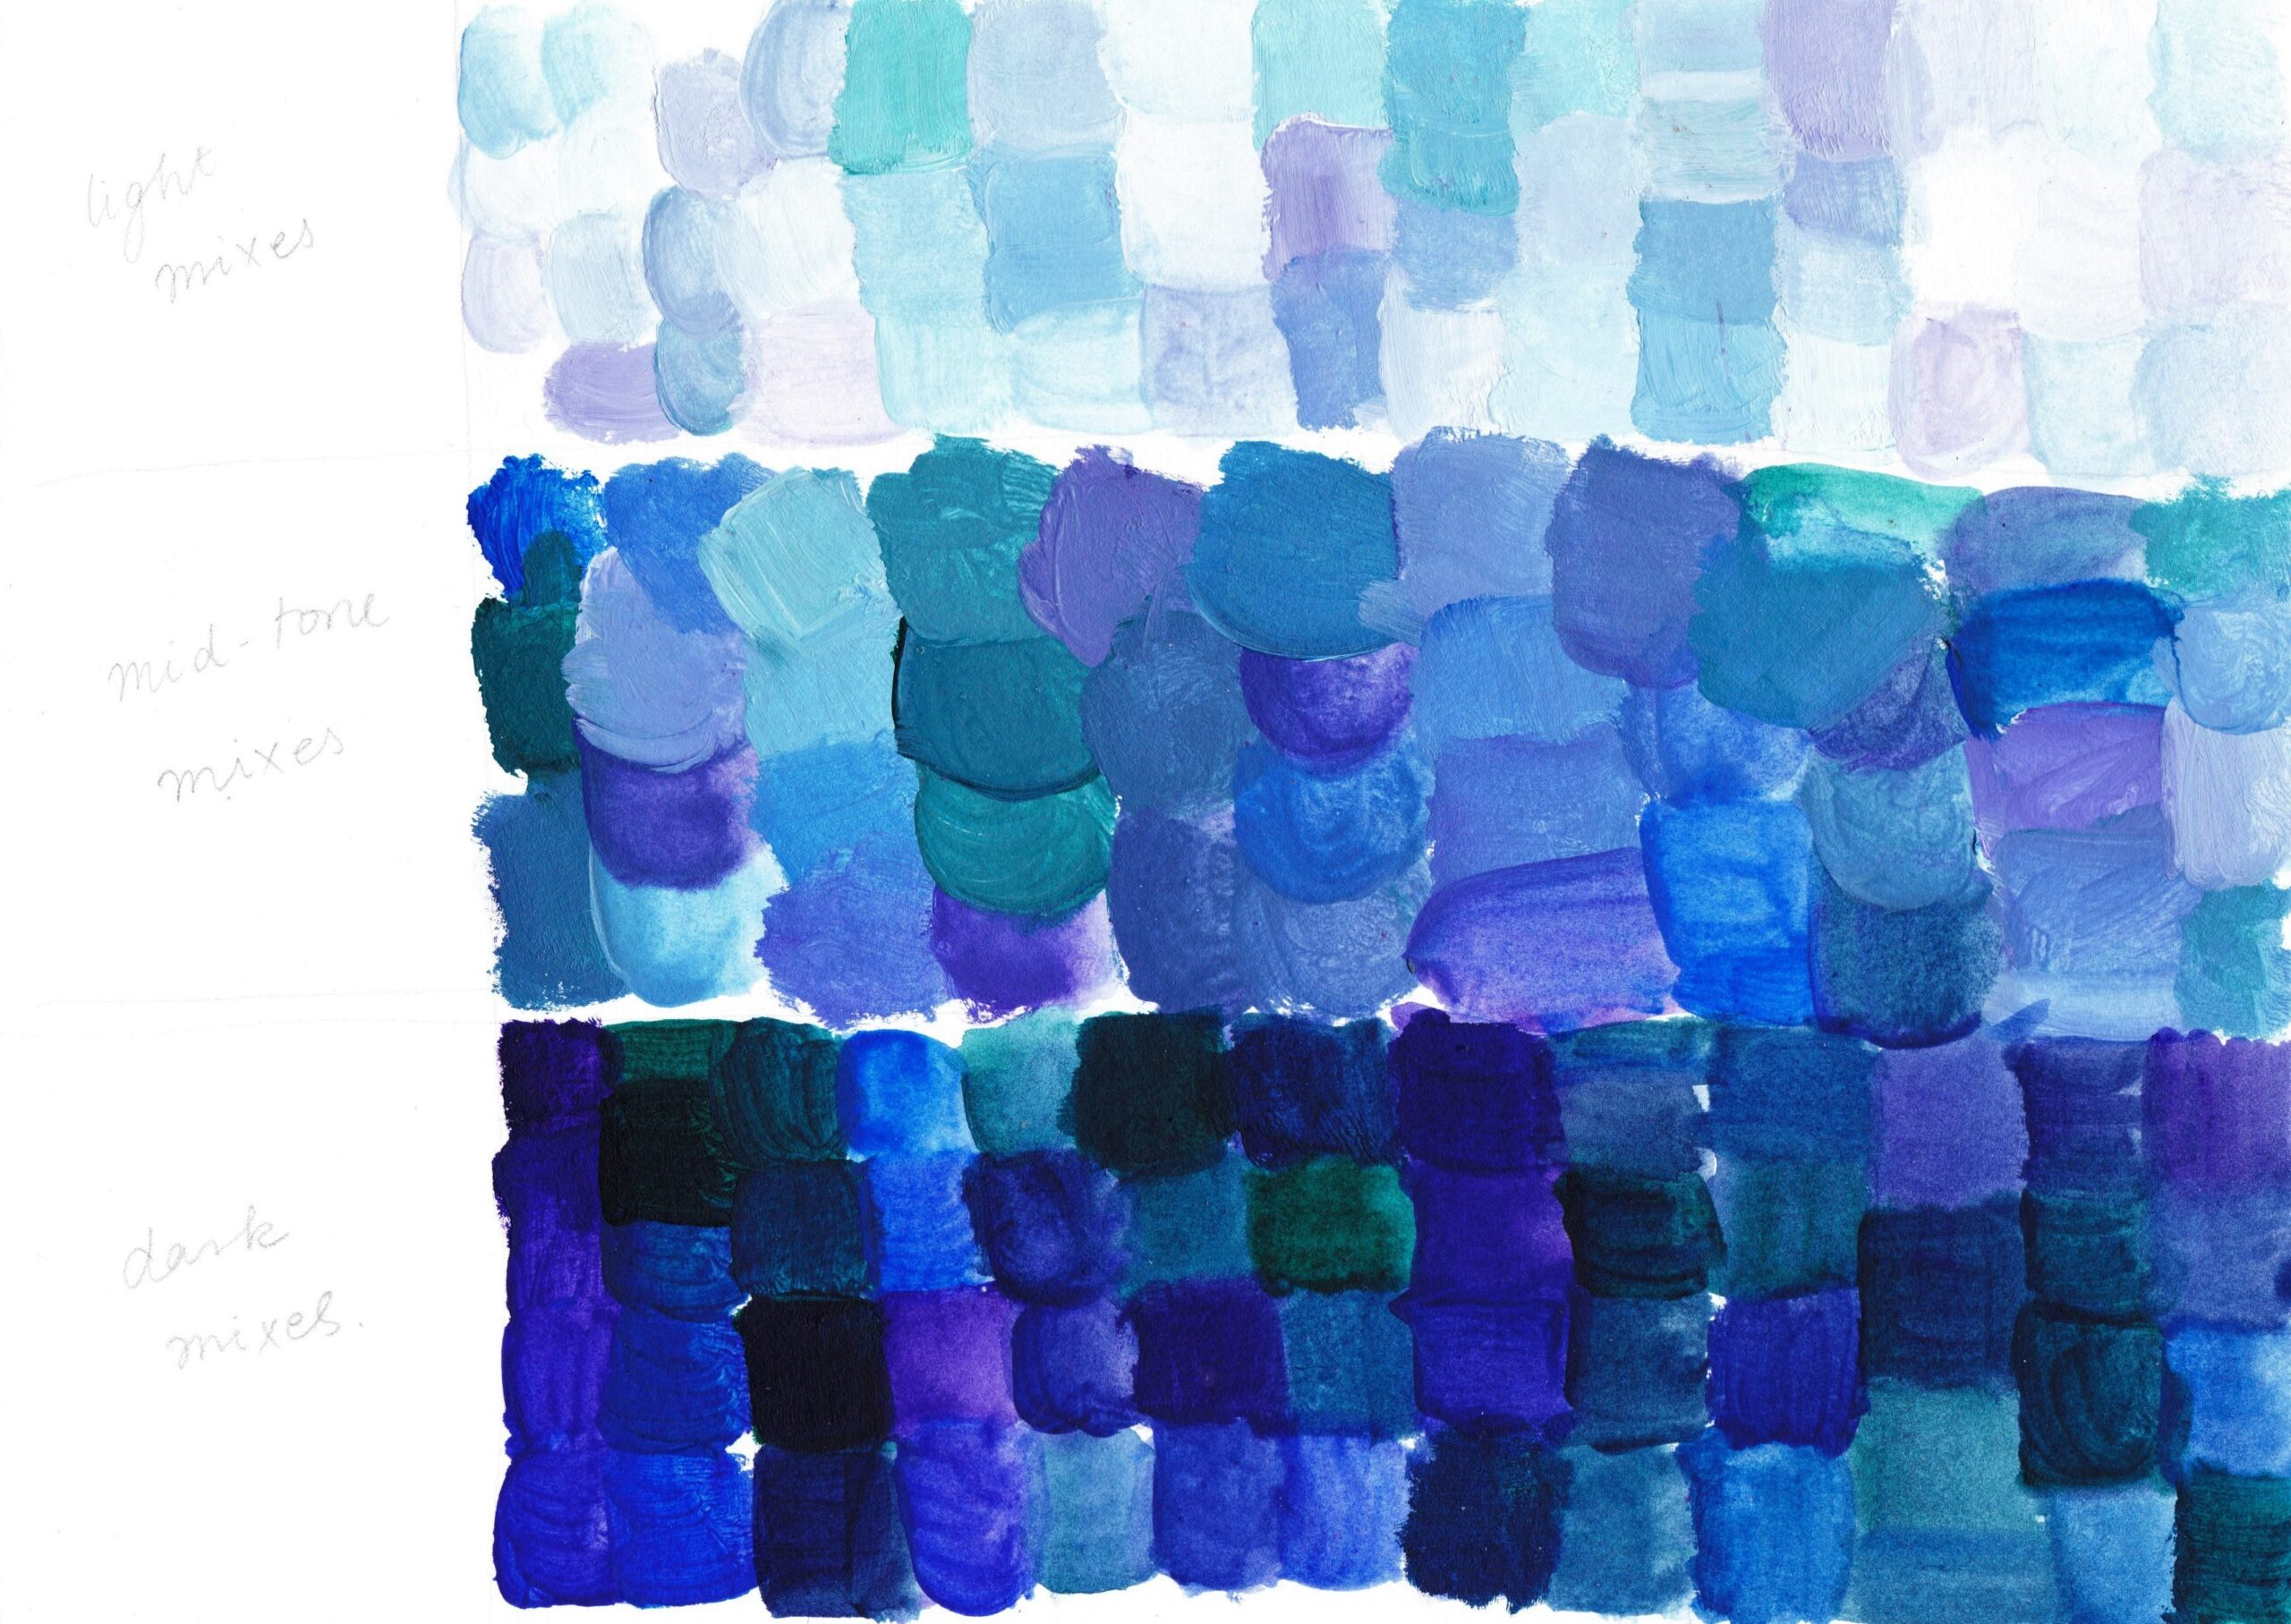 Light, mid-tone and dark colour mixes made with Ultramarine Violet, Cobalt Blue Genuine, Hooker's Green and White